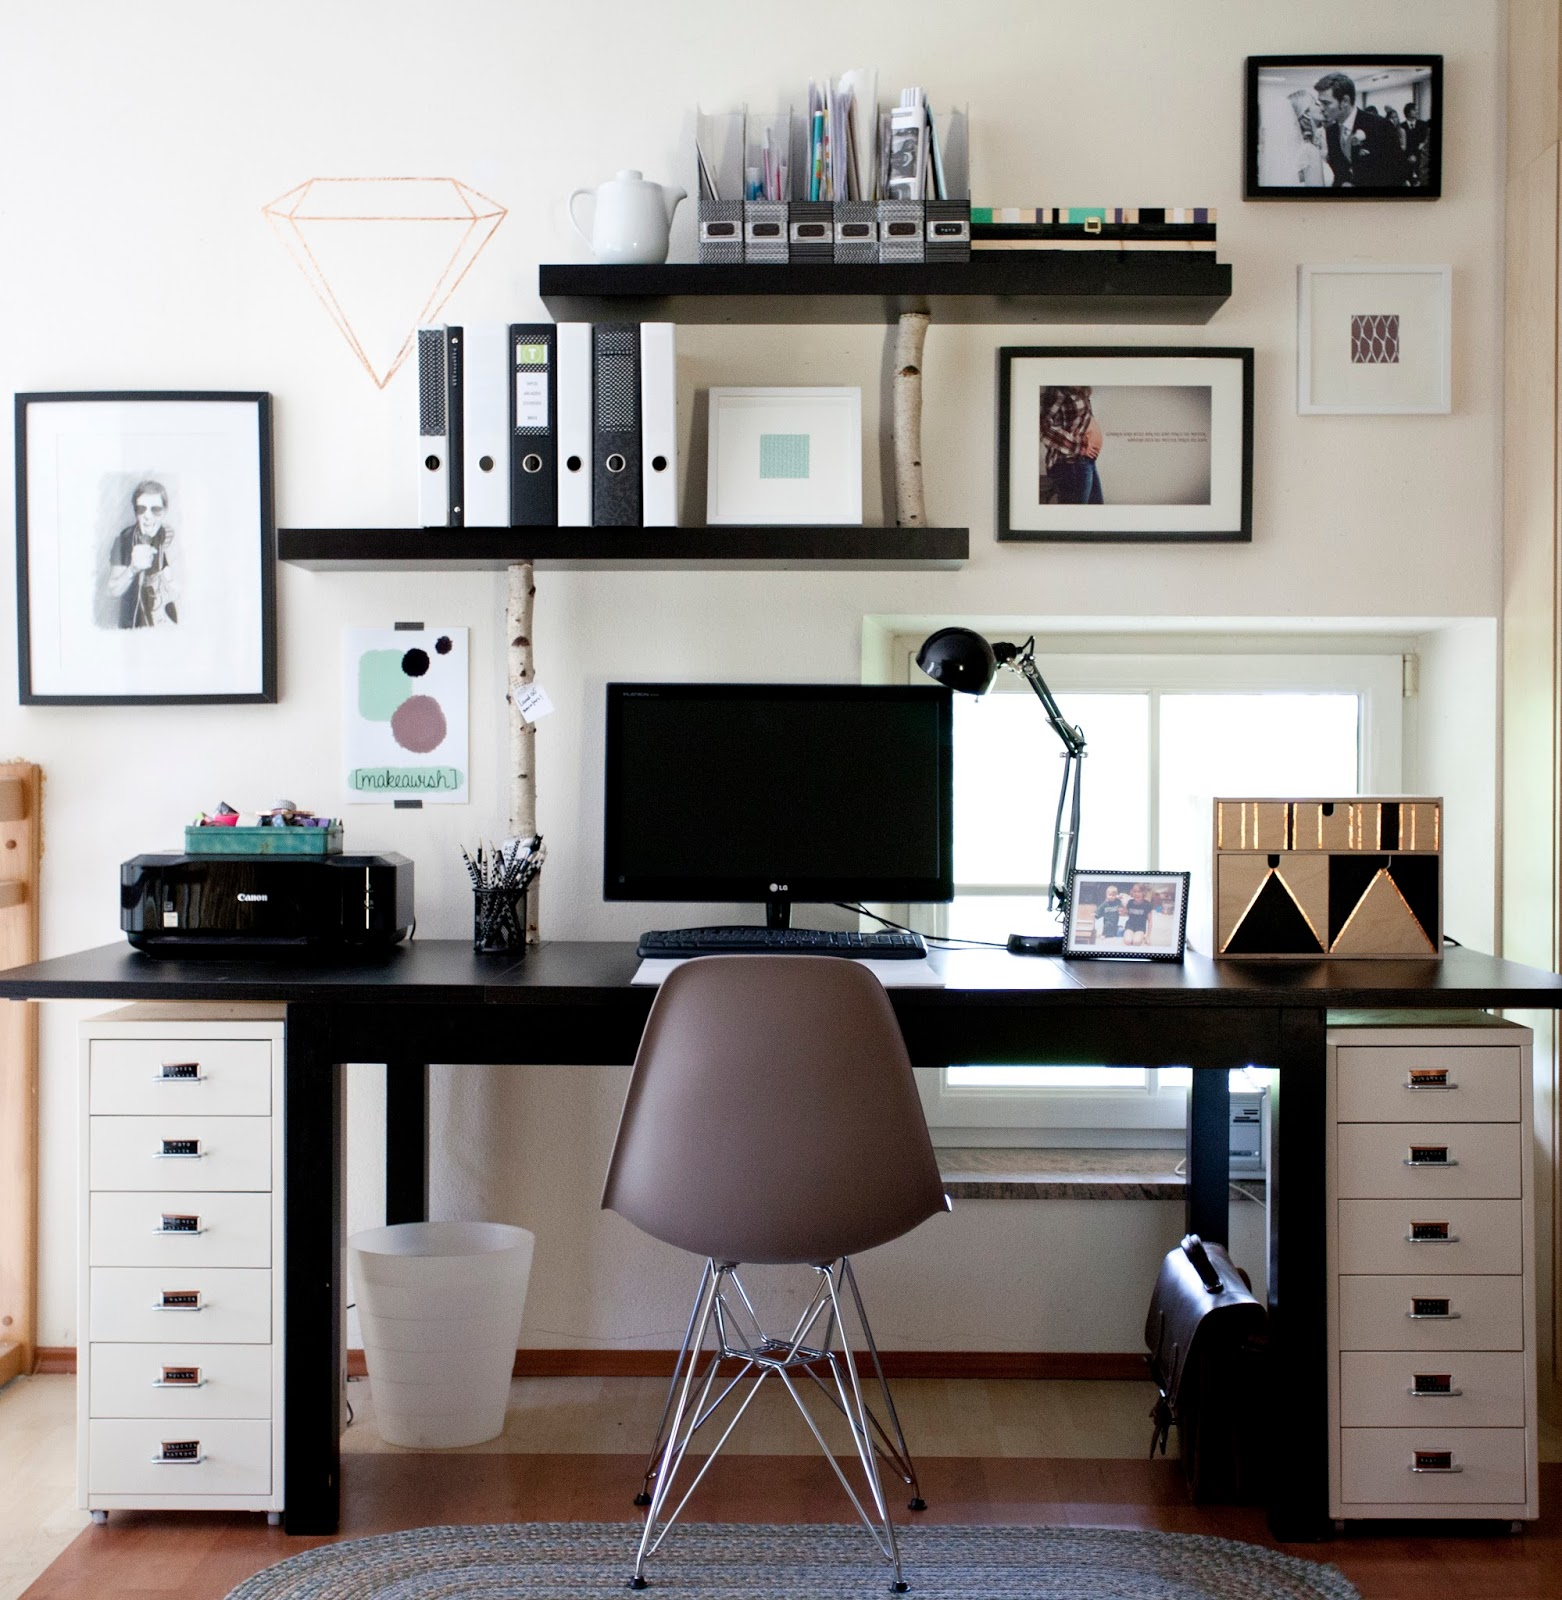 mega diy mein neuer arbeitsplatz wohn projekt. Black Bedroom Furniture Sets. Home Design Ideas